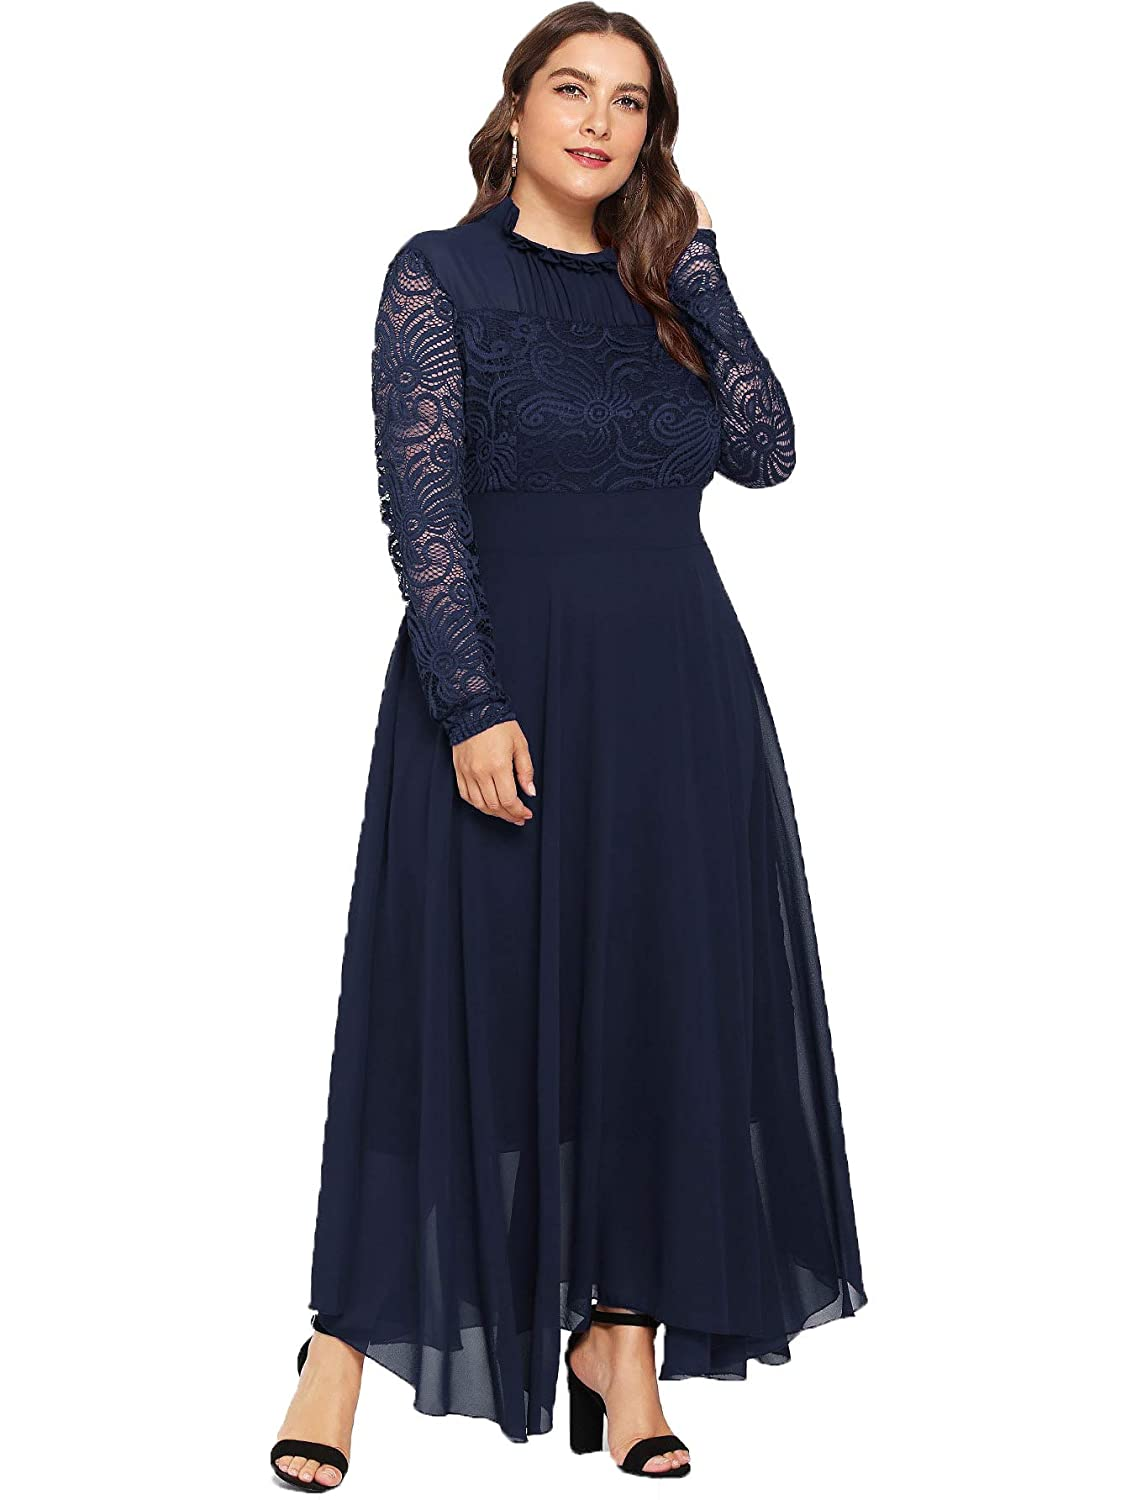 Victorian Plus Size Dresses | Edwardian Clothing, Costumes Milumia Womens Vintage Floral Lace Long Sleeve Ruched Neck Flowy Long Dress $39.99 AT vintagedancer.com